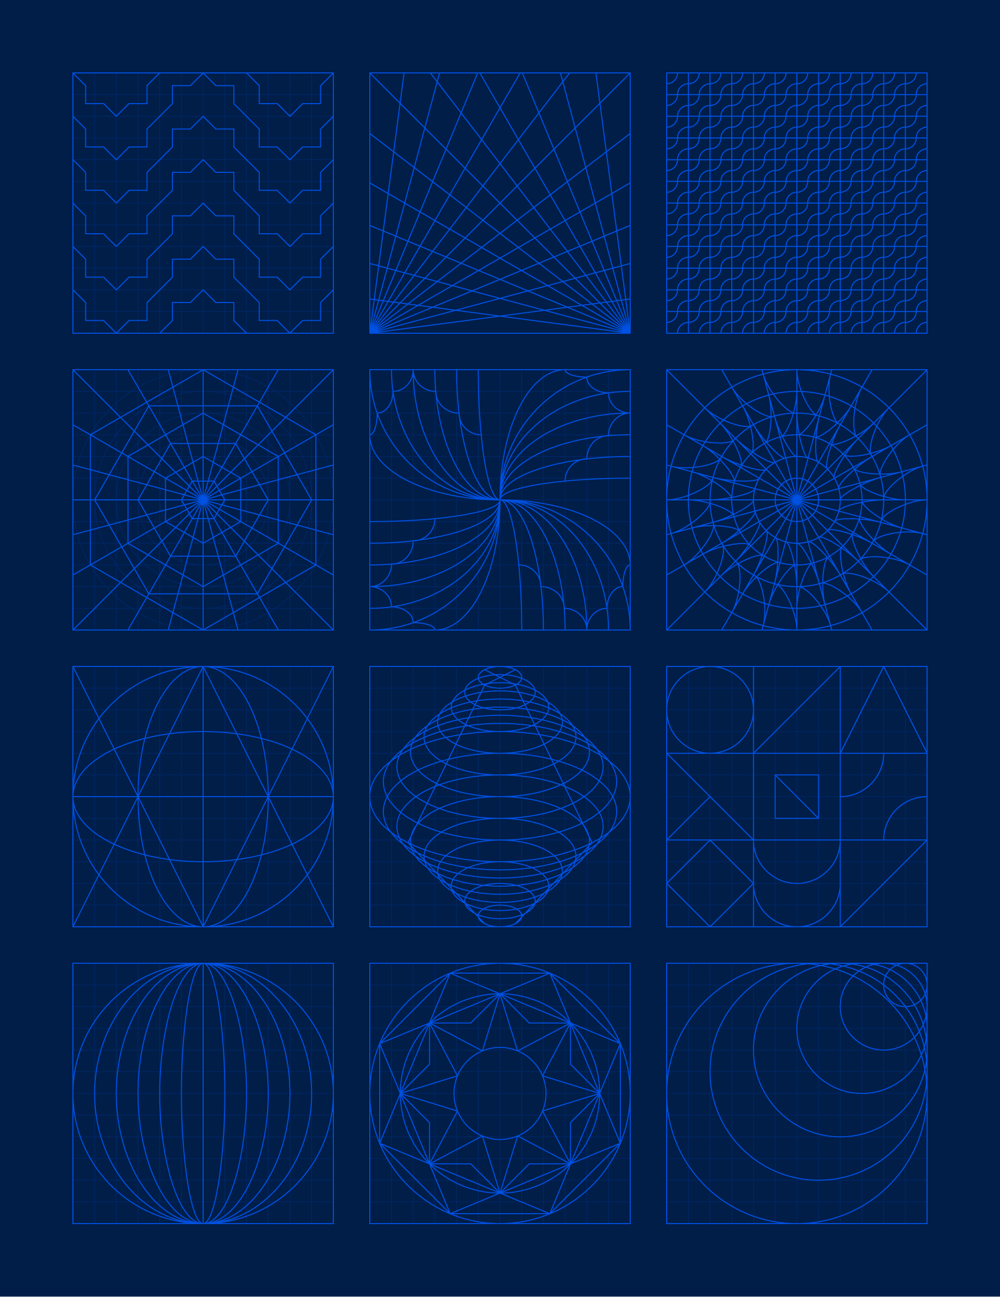 Geometric Grid-Based Designs - image 2 - student project